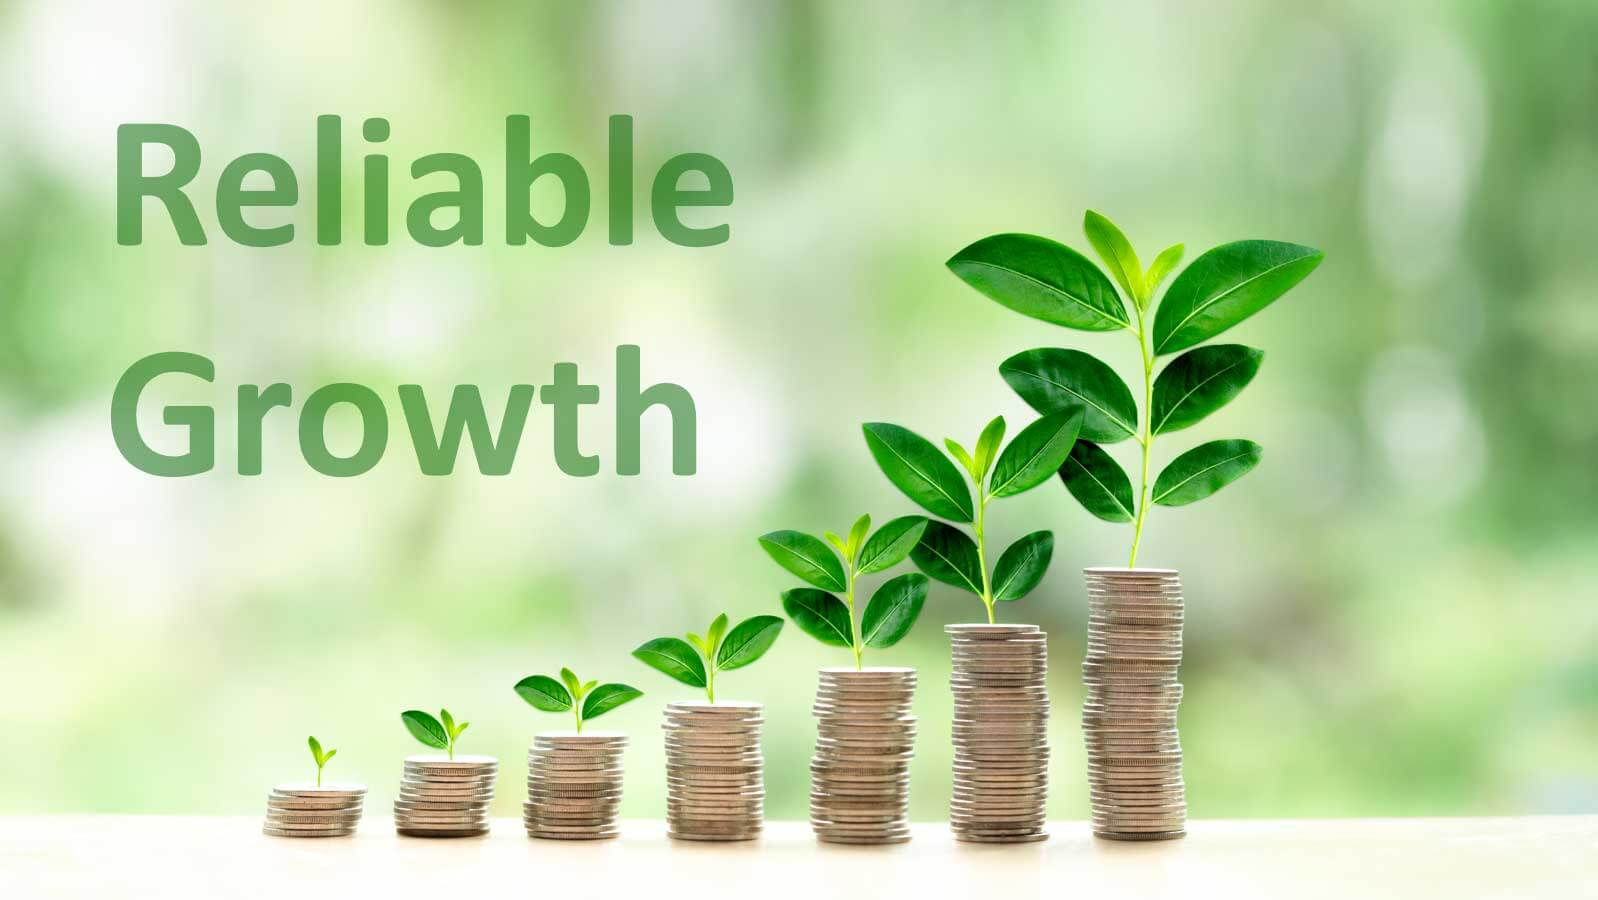 Reliable growth is elusive, especially for companies pursuing quarterly shareholder appeasement. Join the Reliable Growth Club through B2B customer insight.